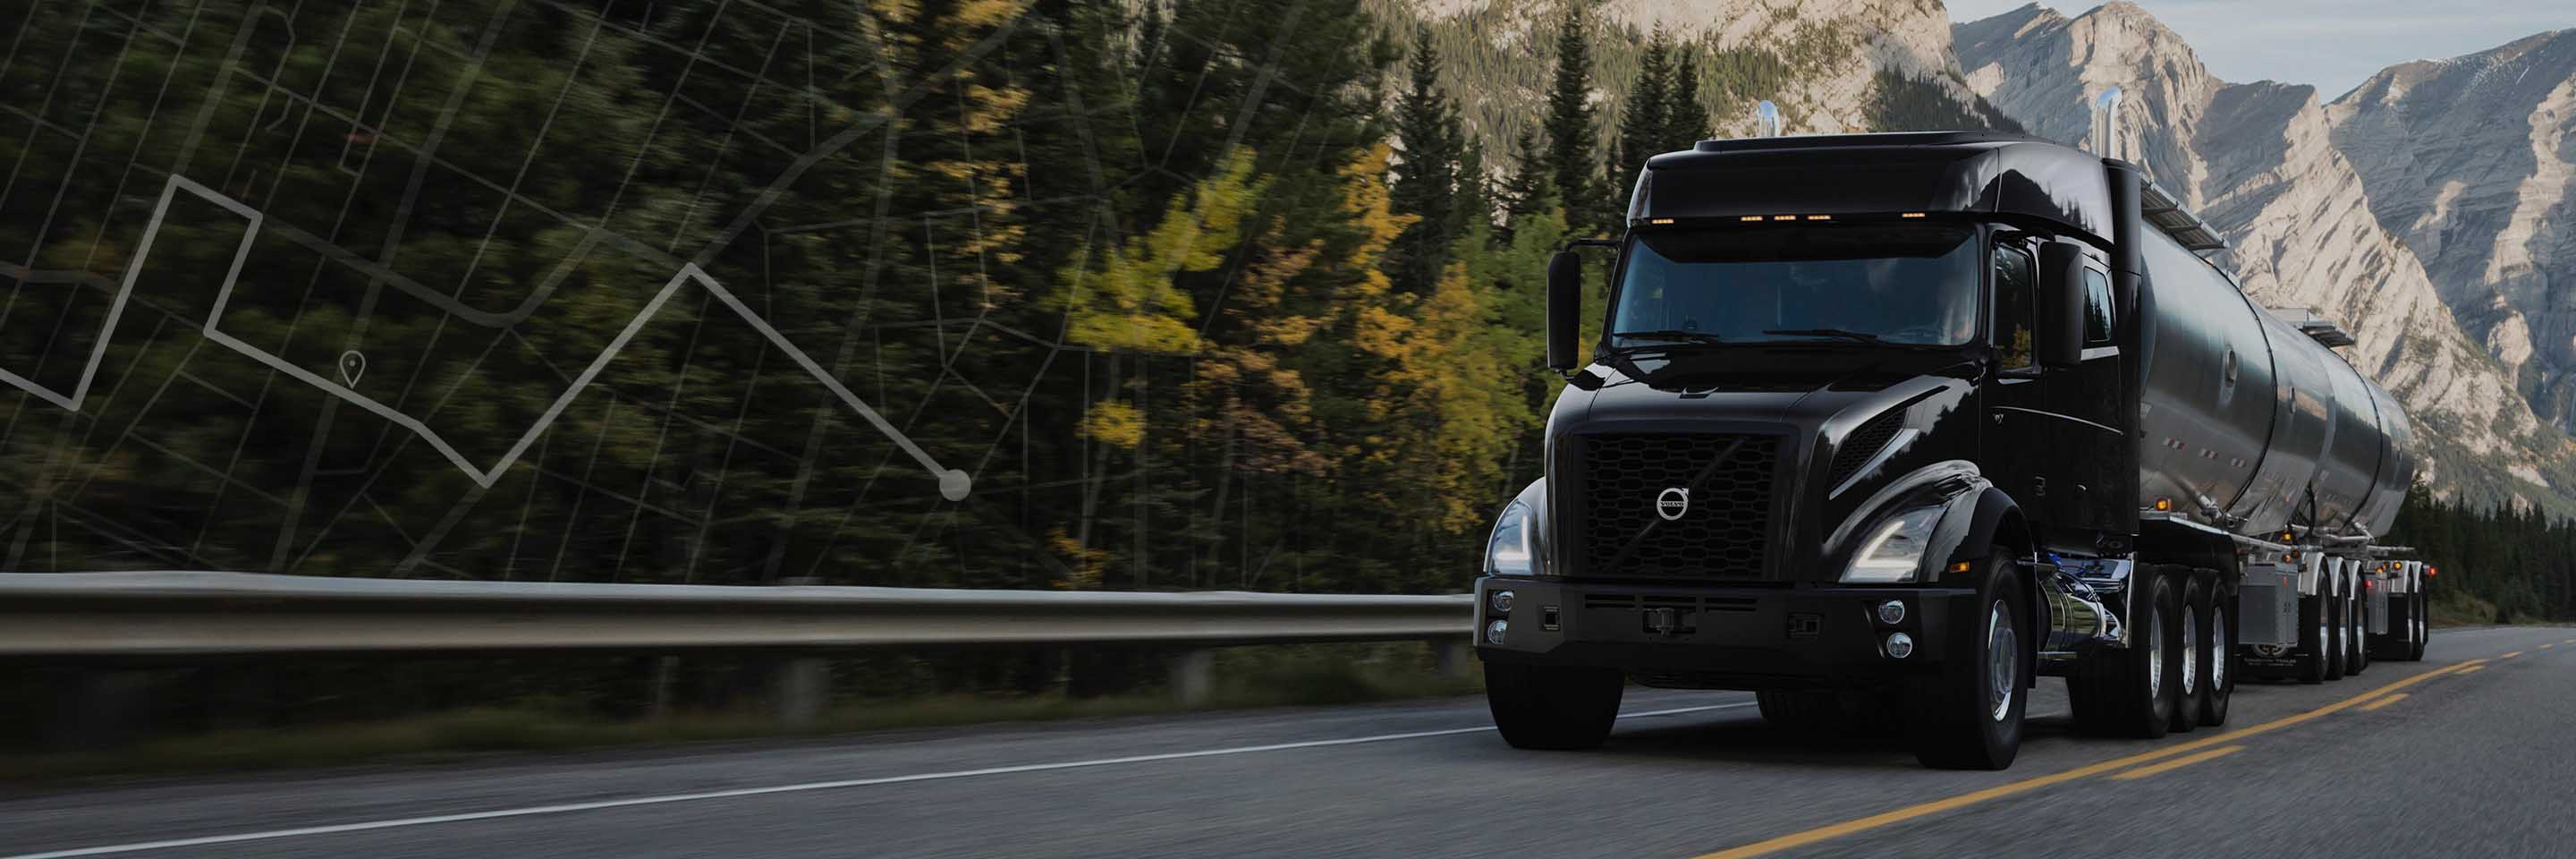 More than 400 Volvo Trucks dealers and thousands of service locations across North America.